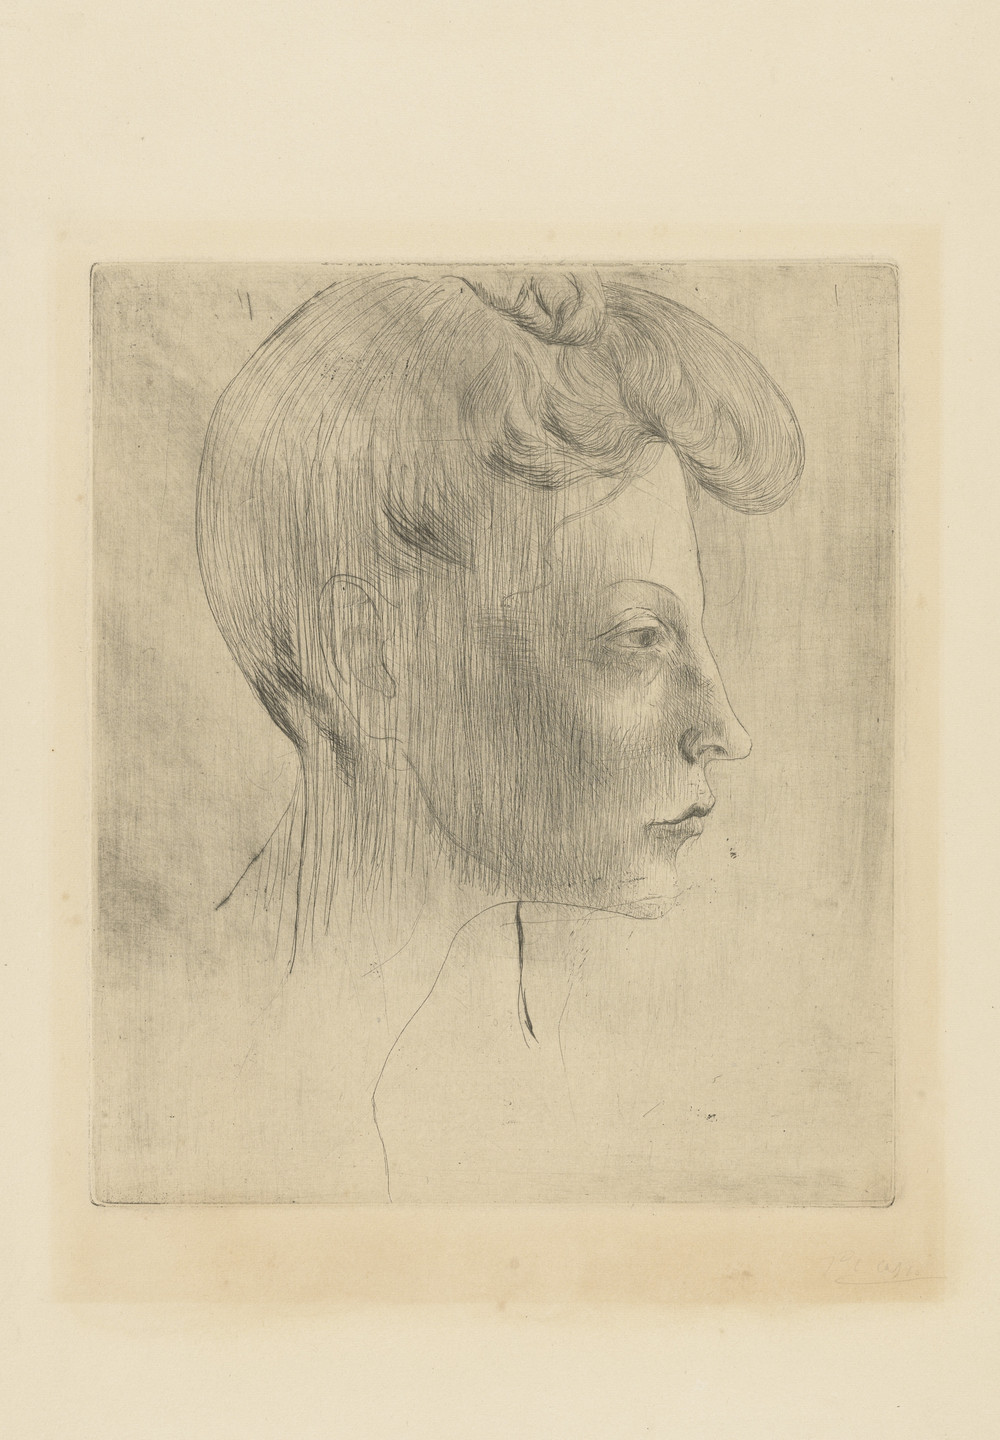 Pablo Picasso. Head of a Woman, in Profile (Tête de femme, de profil) from the Saltimbanques series. 1905